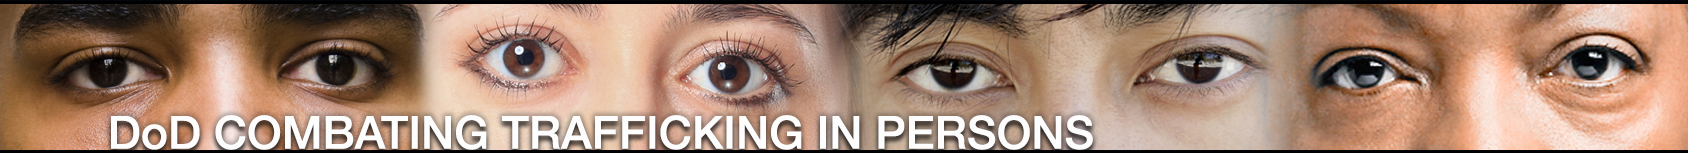 Combating Trafficking in Persons Banner Image with closeup on eyes of multiple merged faces